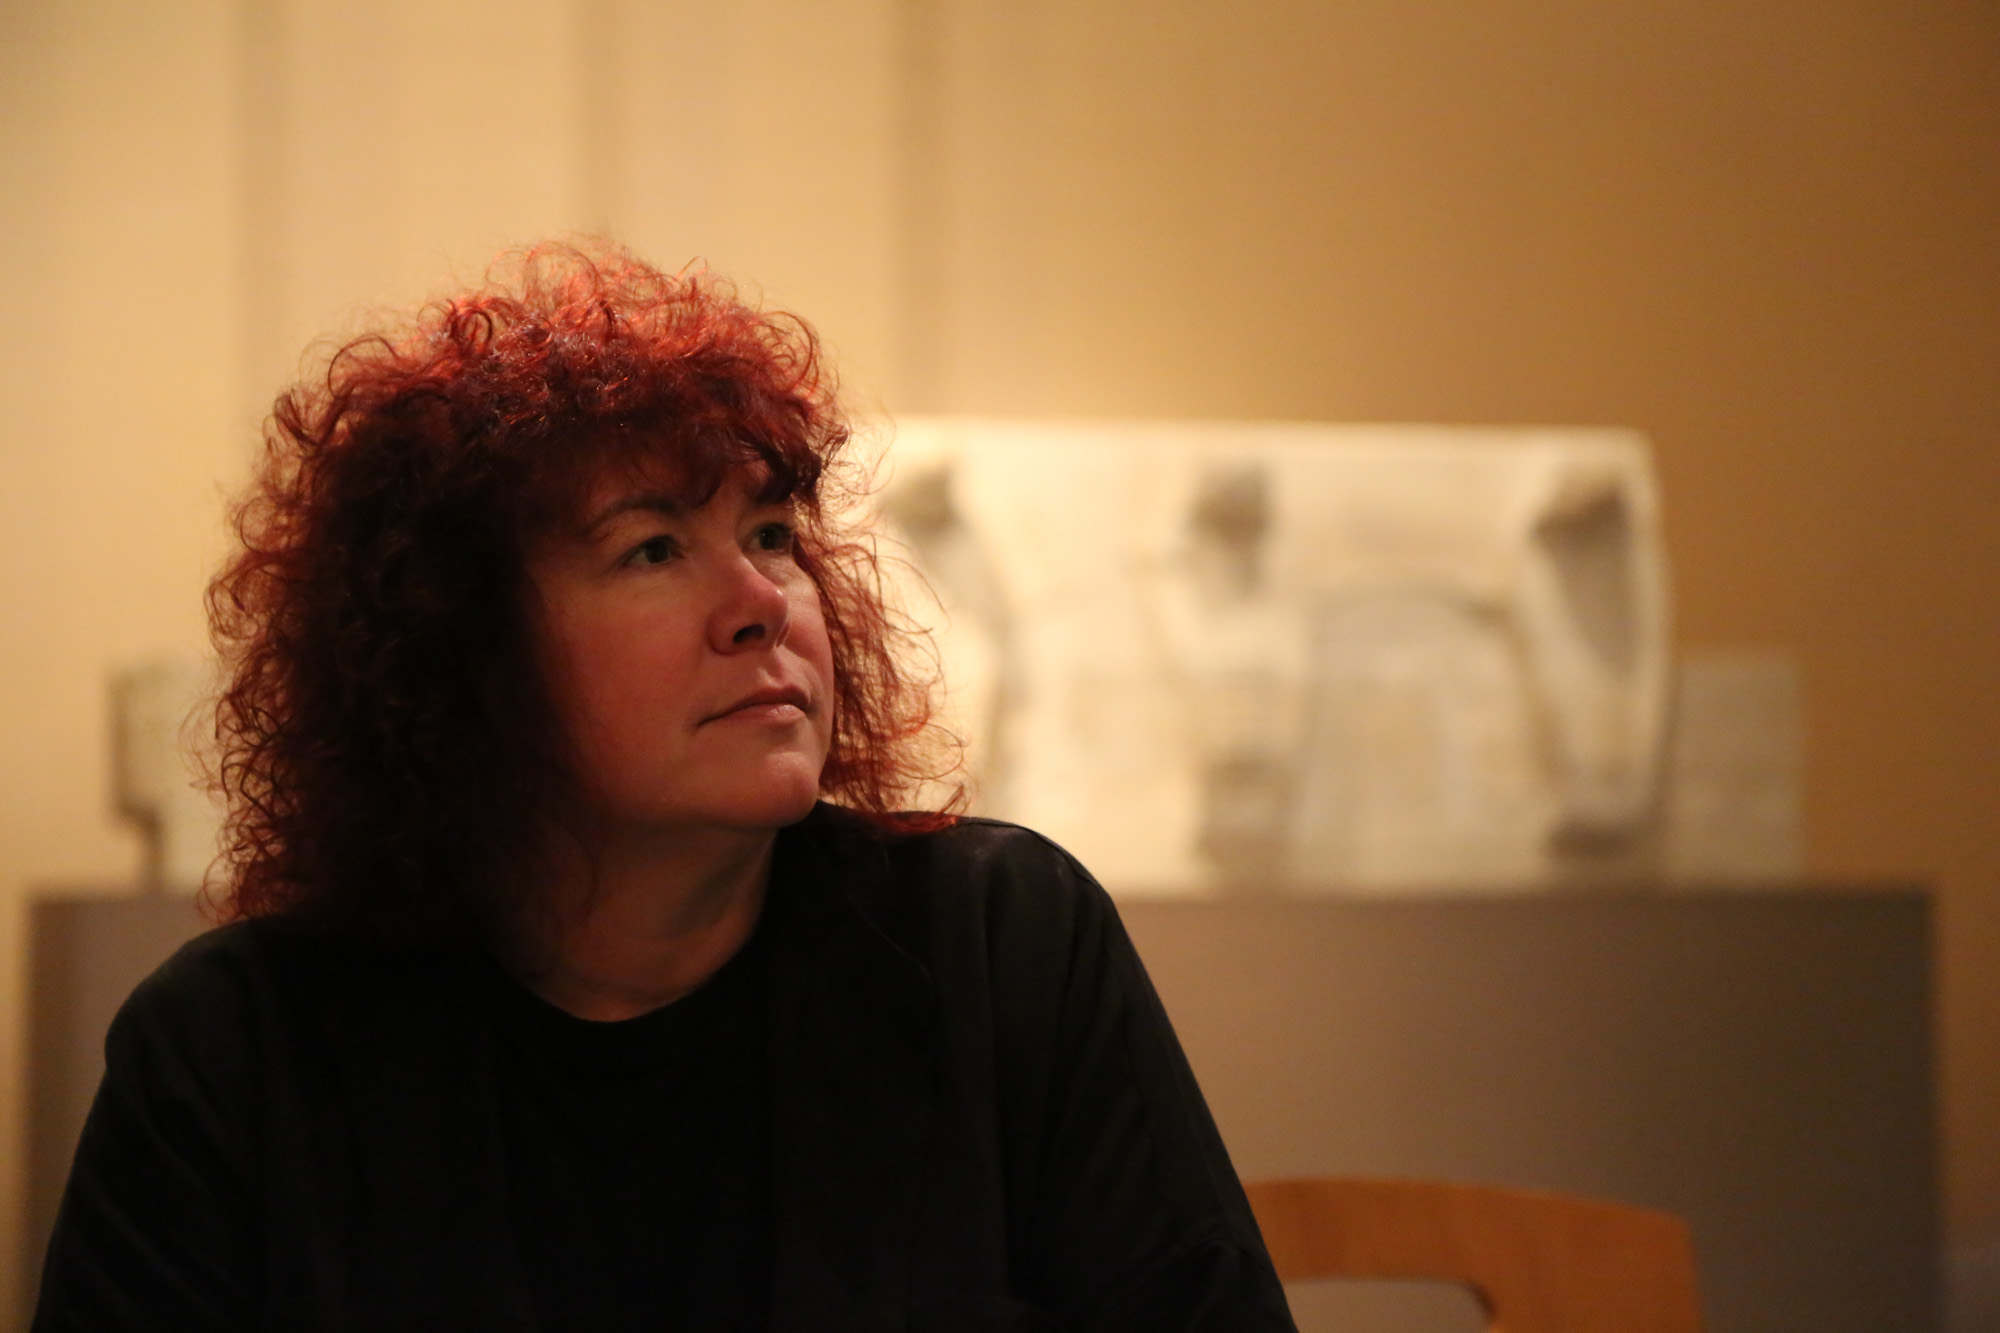 Prof Joann Fletcher at the Saqqara Imhotep Museum. Image copyright: Dr Amr Aboulfath.